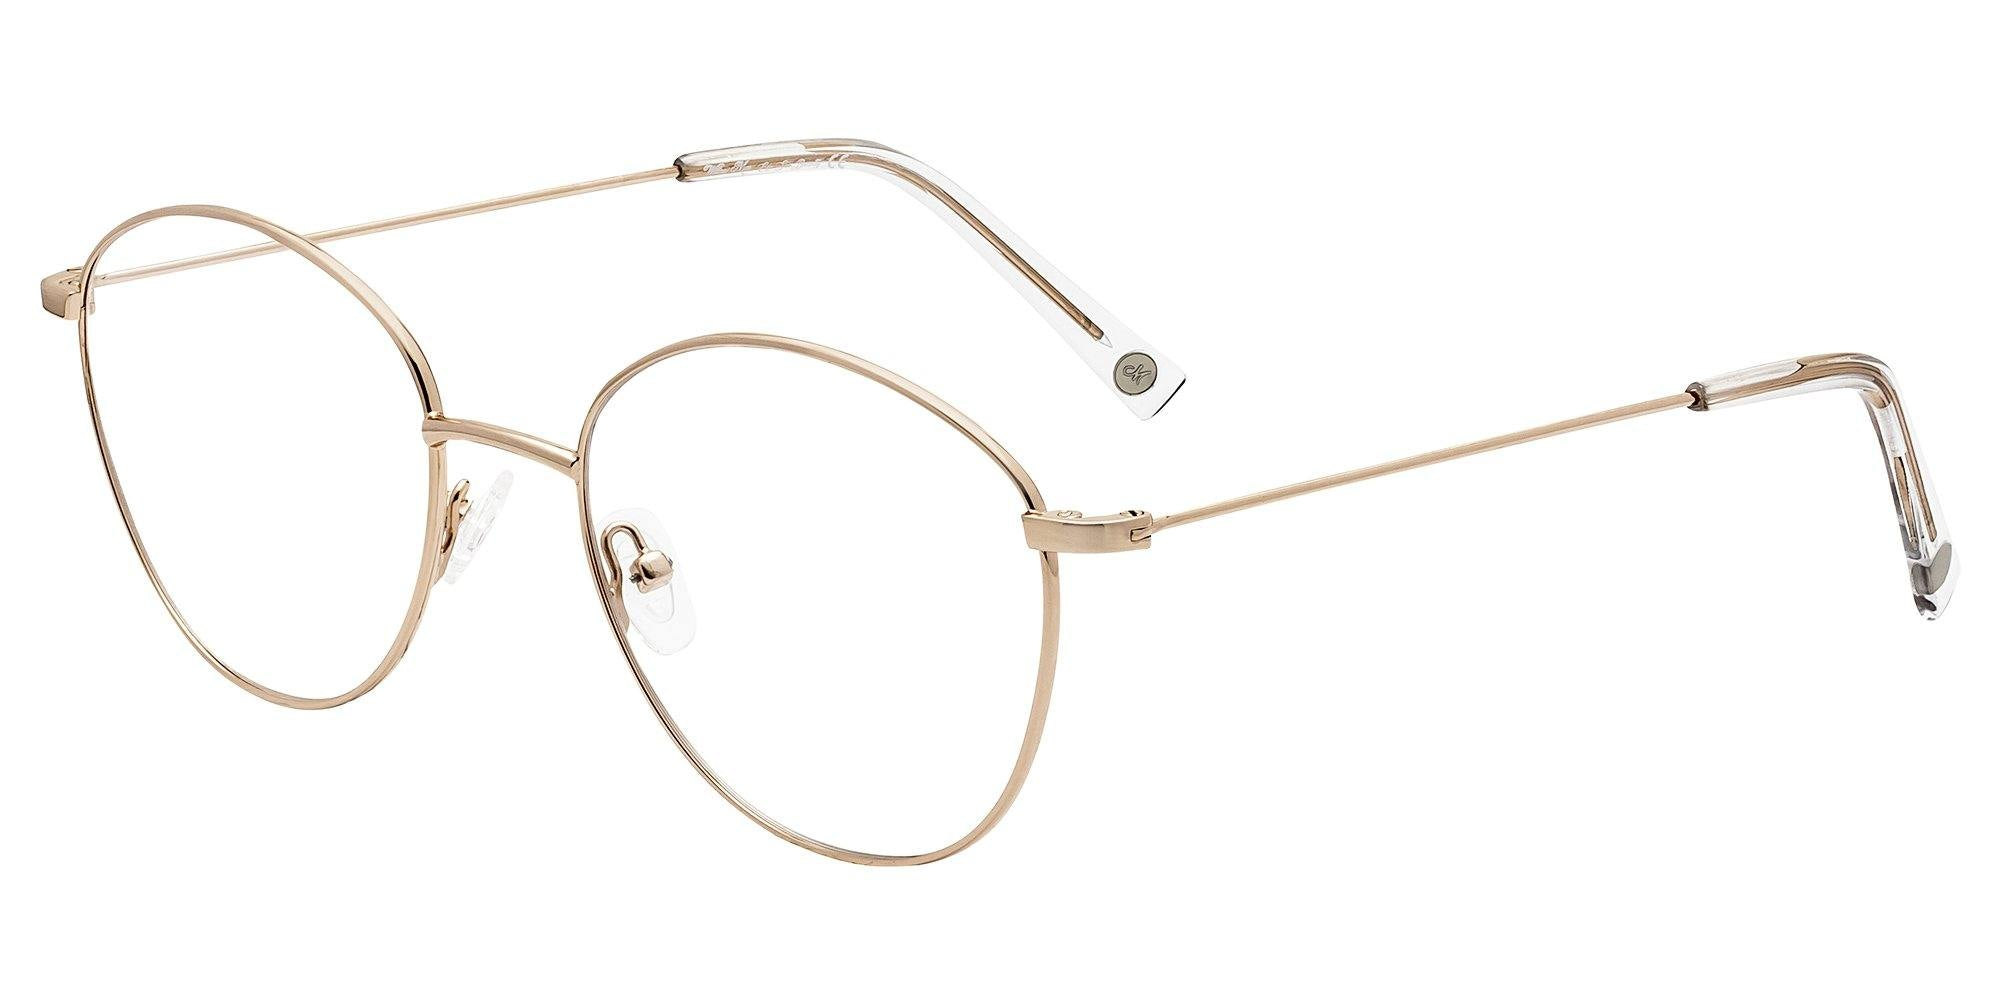 CARRY - Willow Mae Eyewear